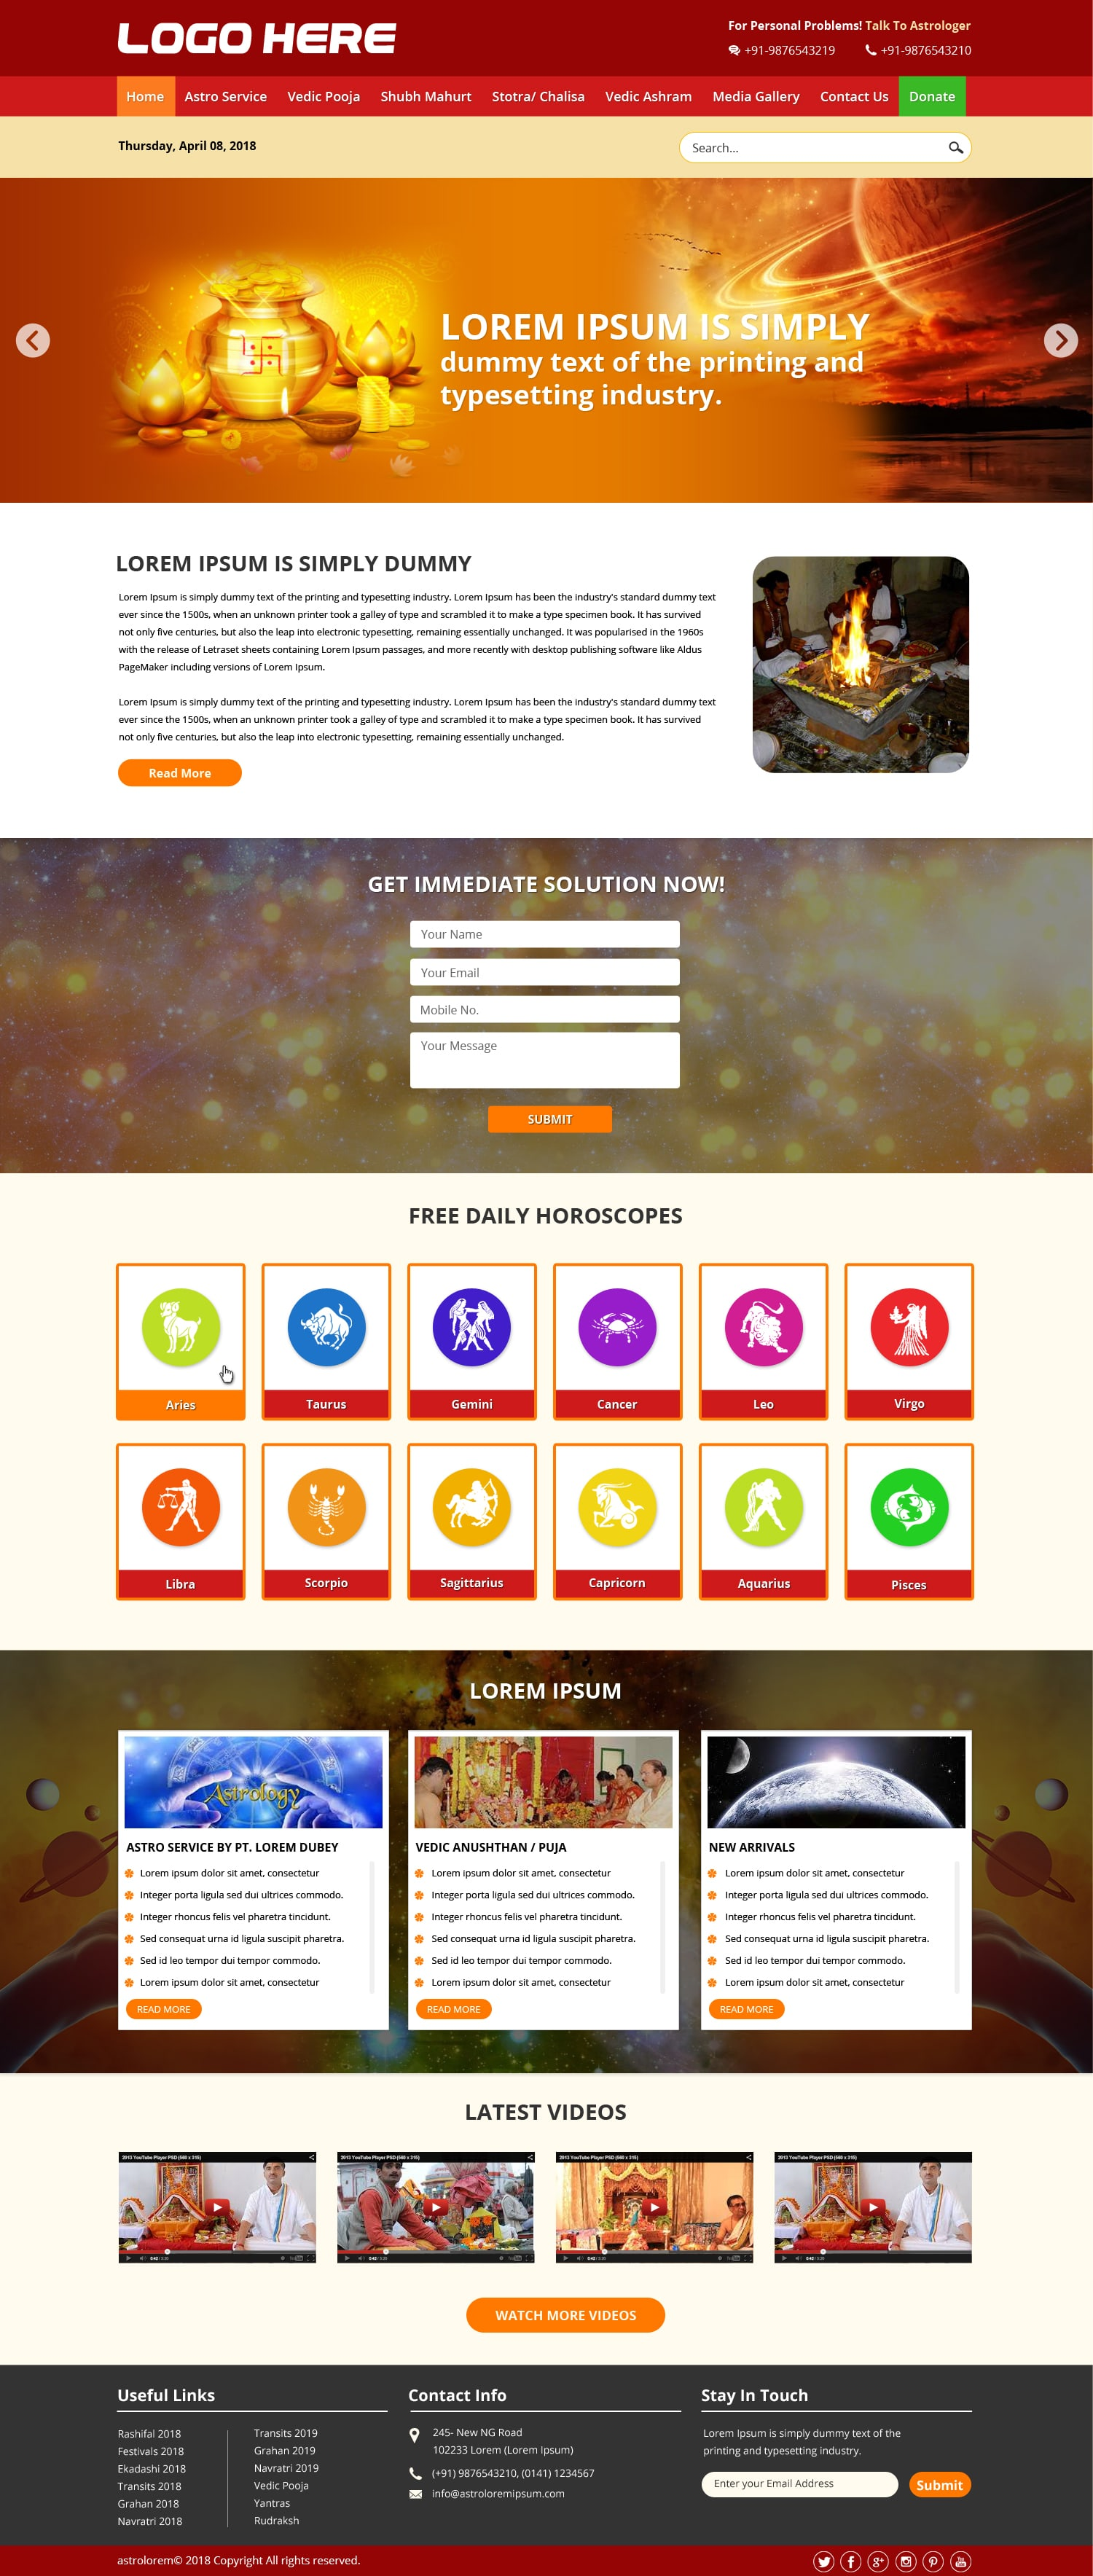 Astrology website template design